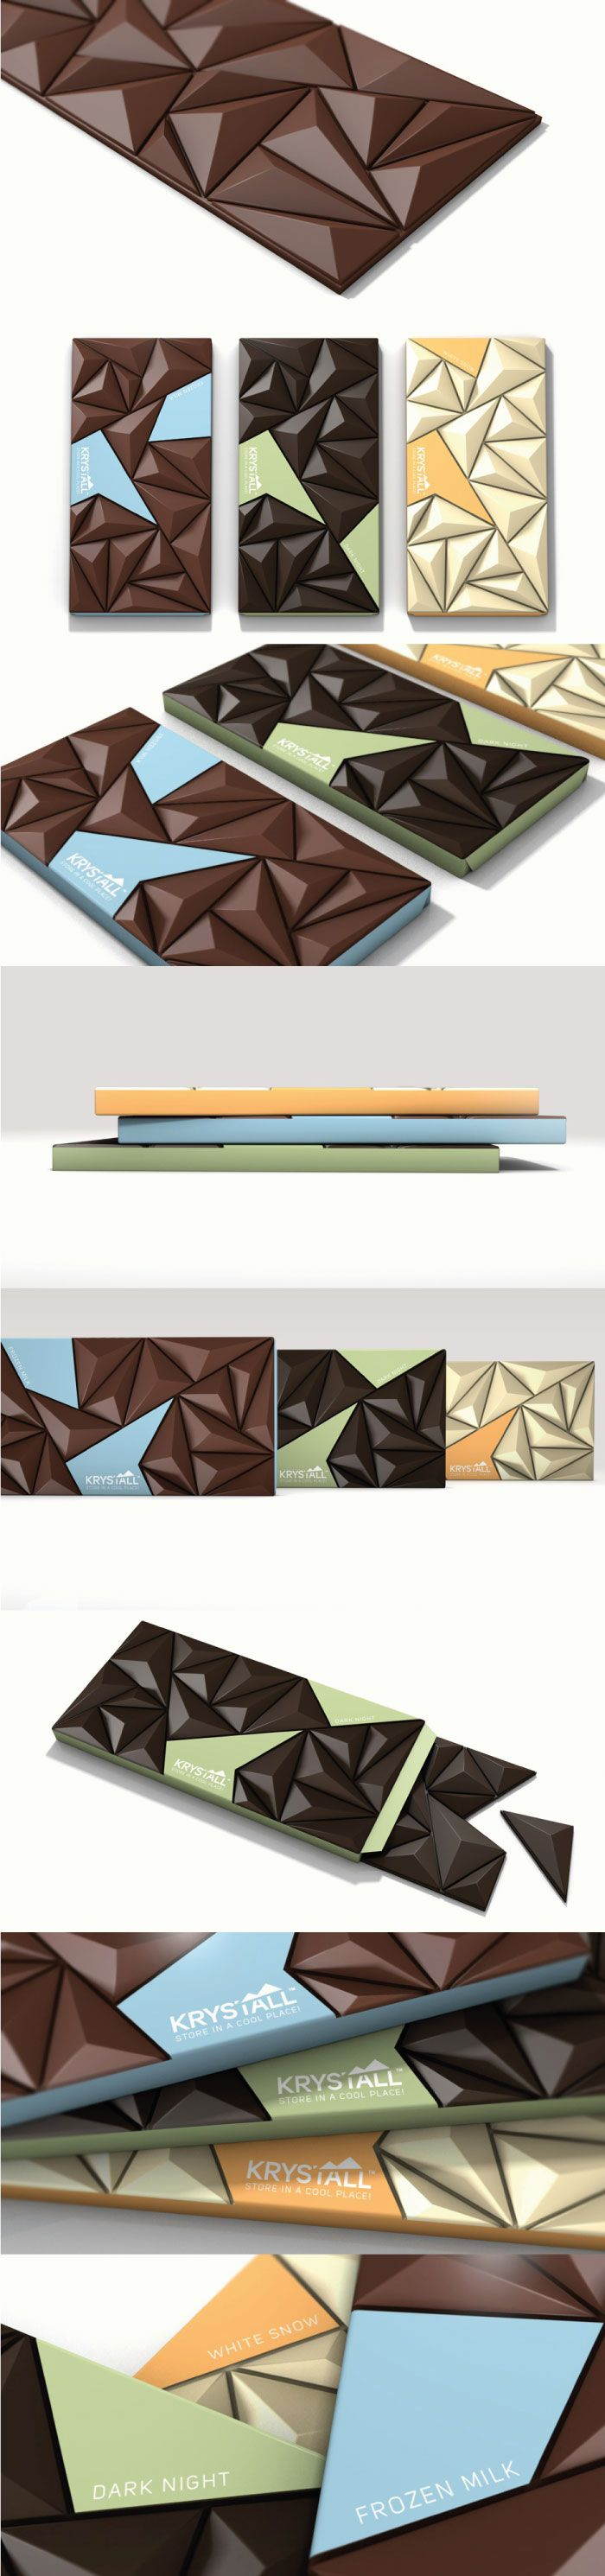 Chocolate packaging #chocolate #logo #design #packaging